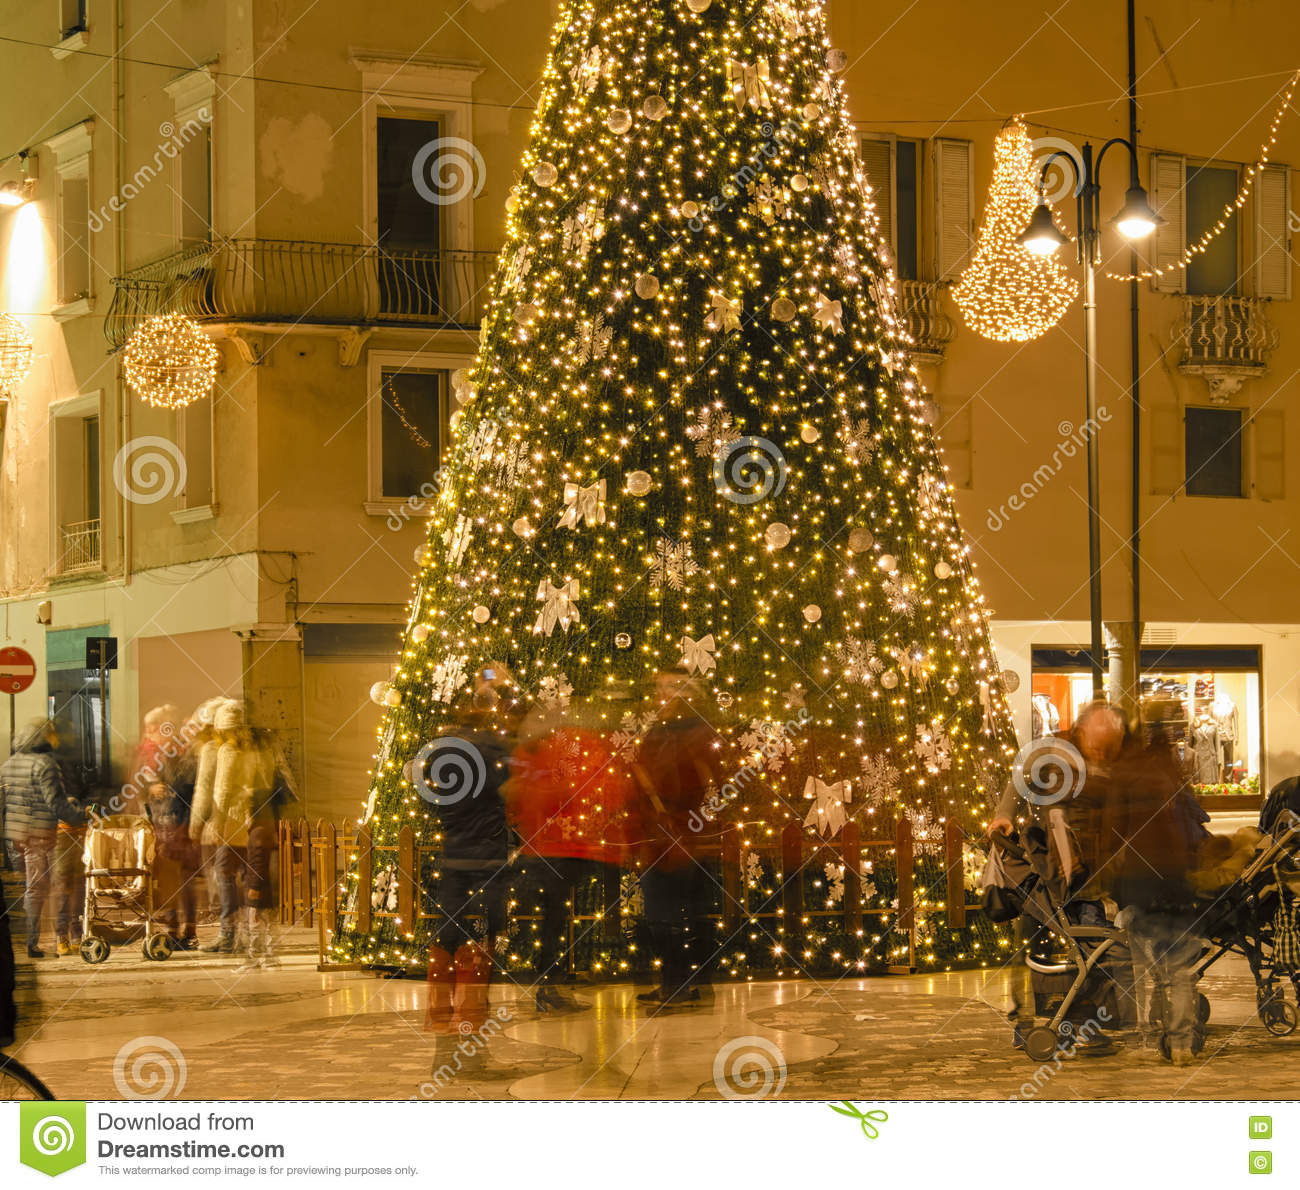 People Hunting For Gifts Before Christmas Stock Image - Image of ...